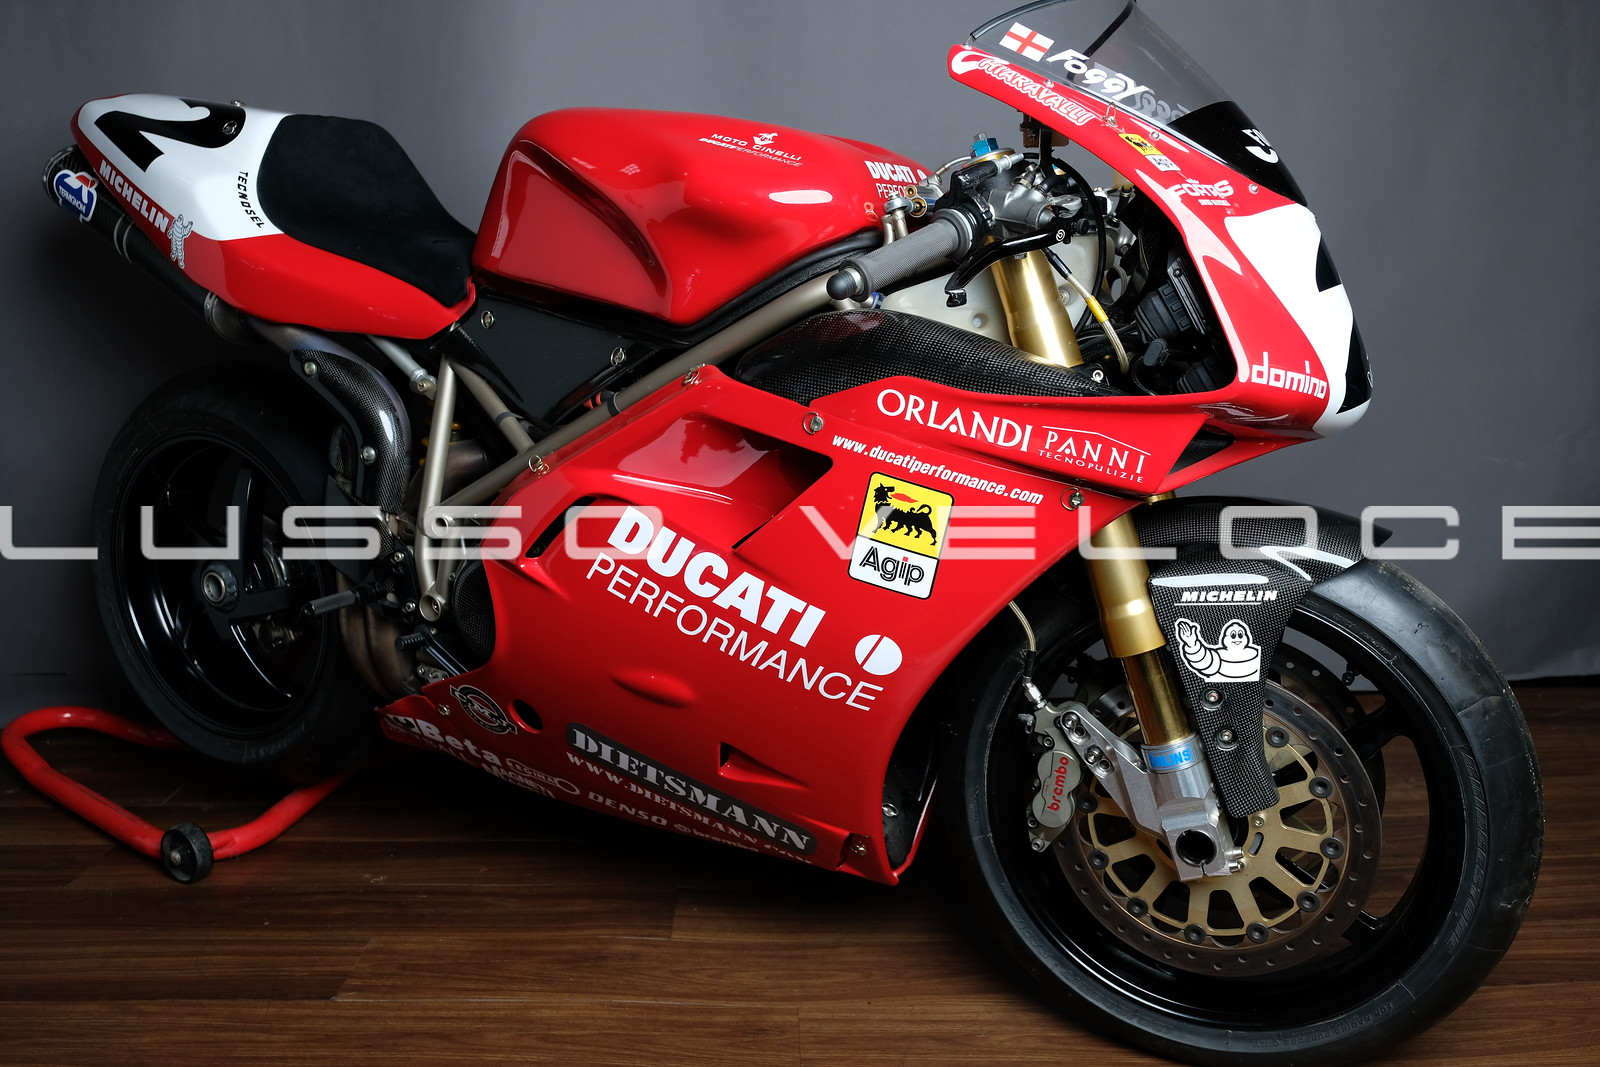 Ducati 1998 996 RS Corse in Foggy livery